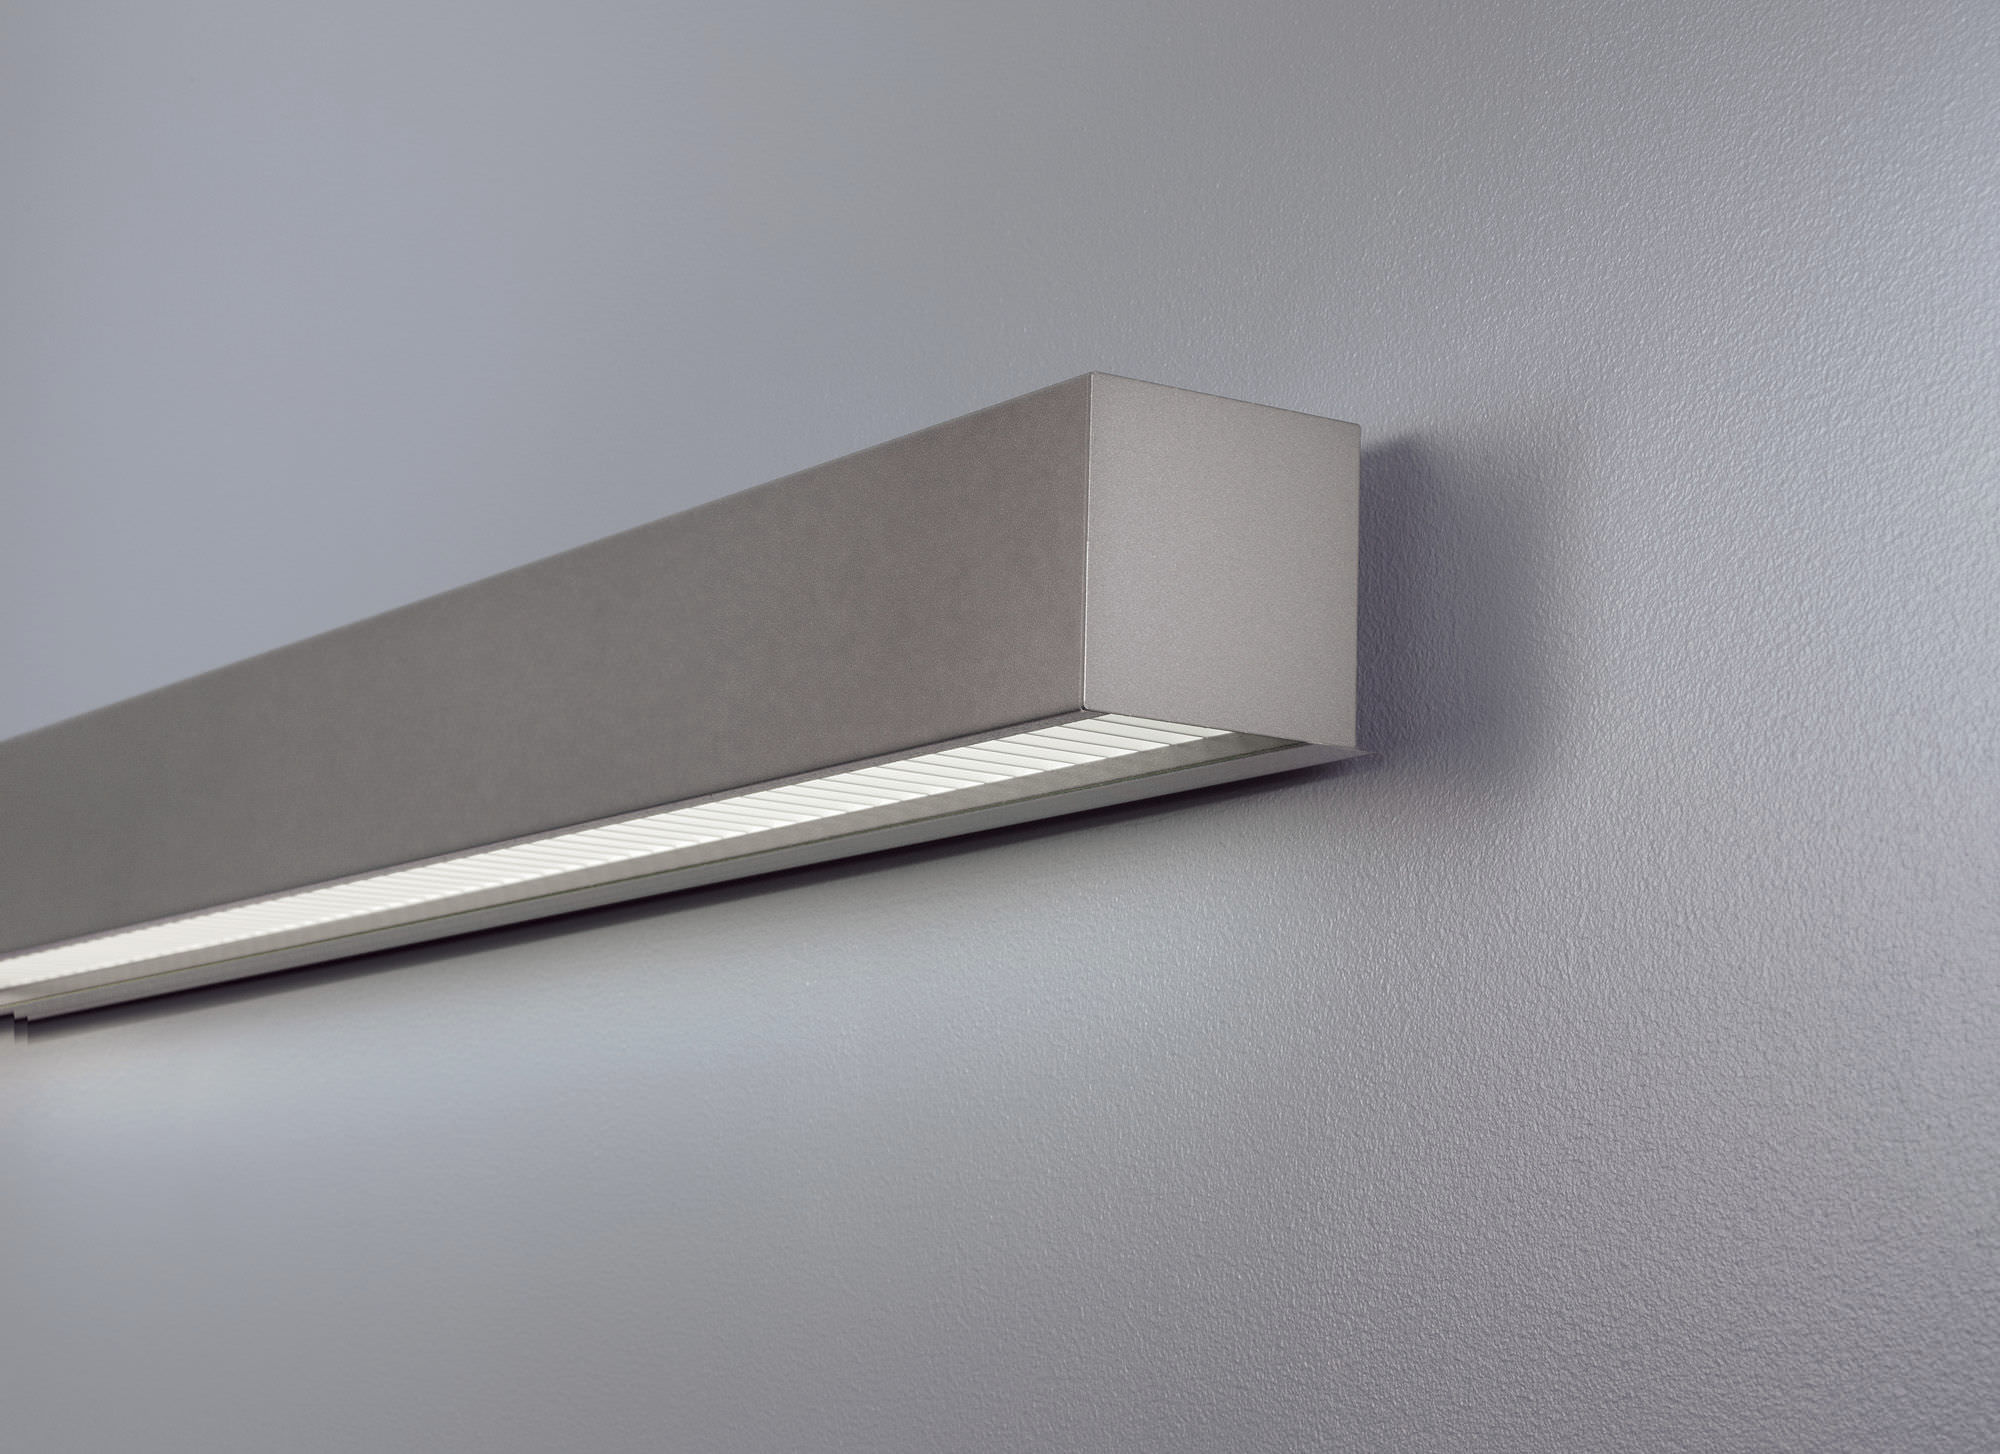 Surface mounted light fixture recessed wall fluorescent linear surface mounted light fixture recessed wall fluorescent linear mozeypictures Image collections